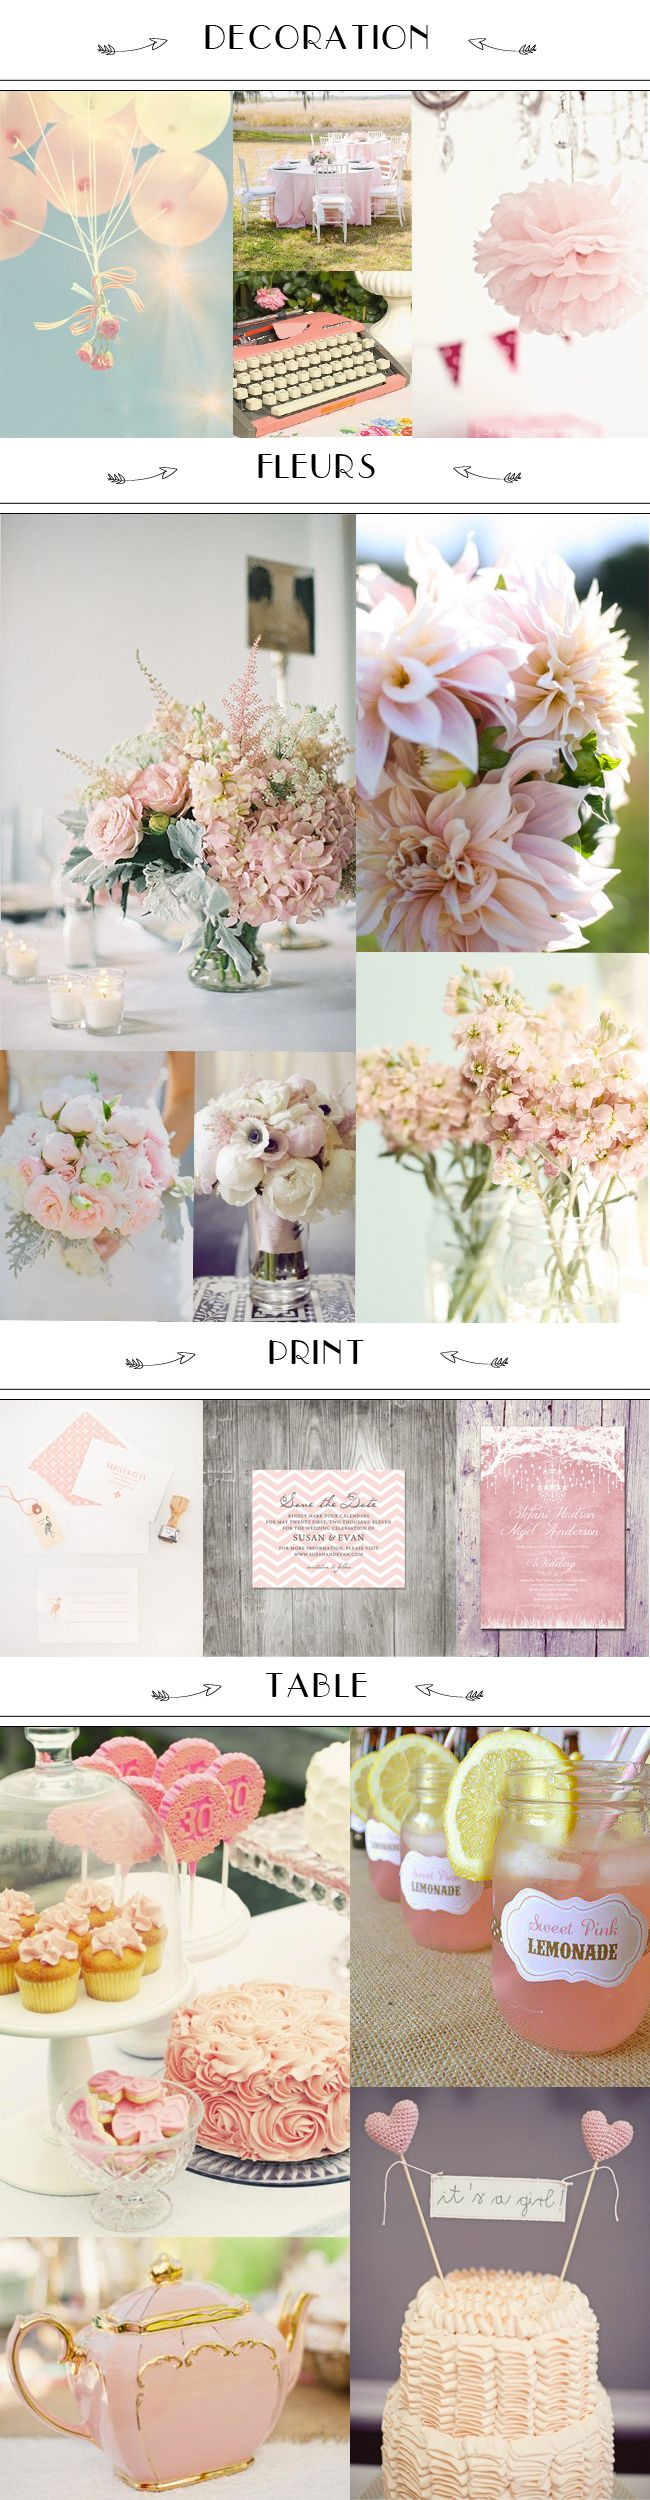 Inspiration deco faire part table fleur pour une pink party.